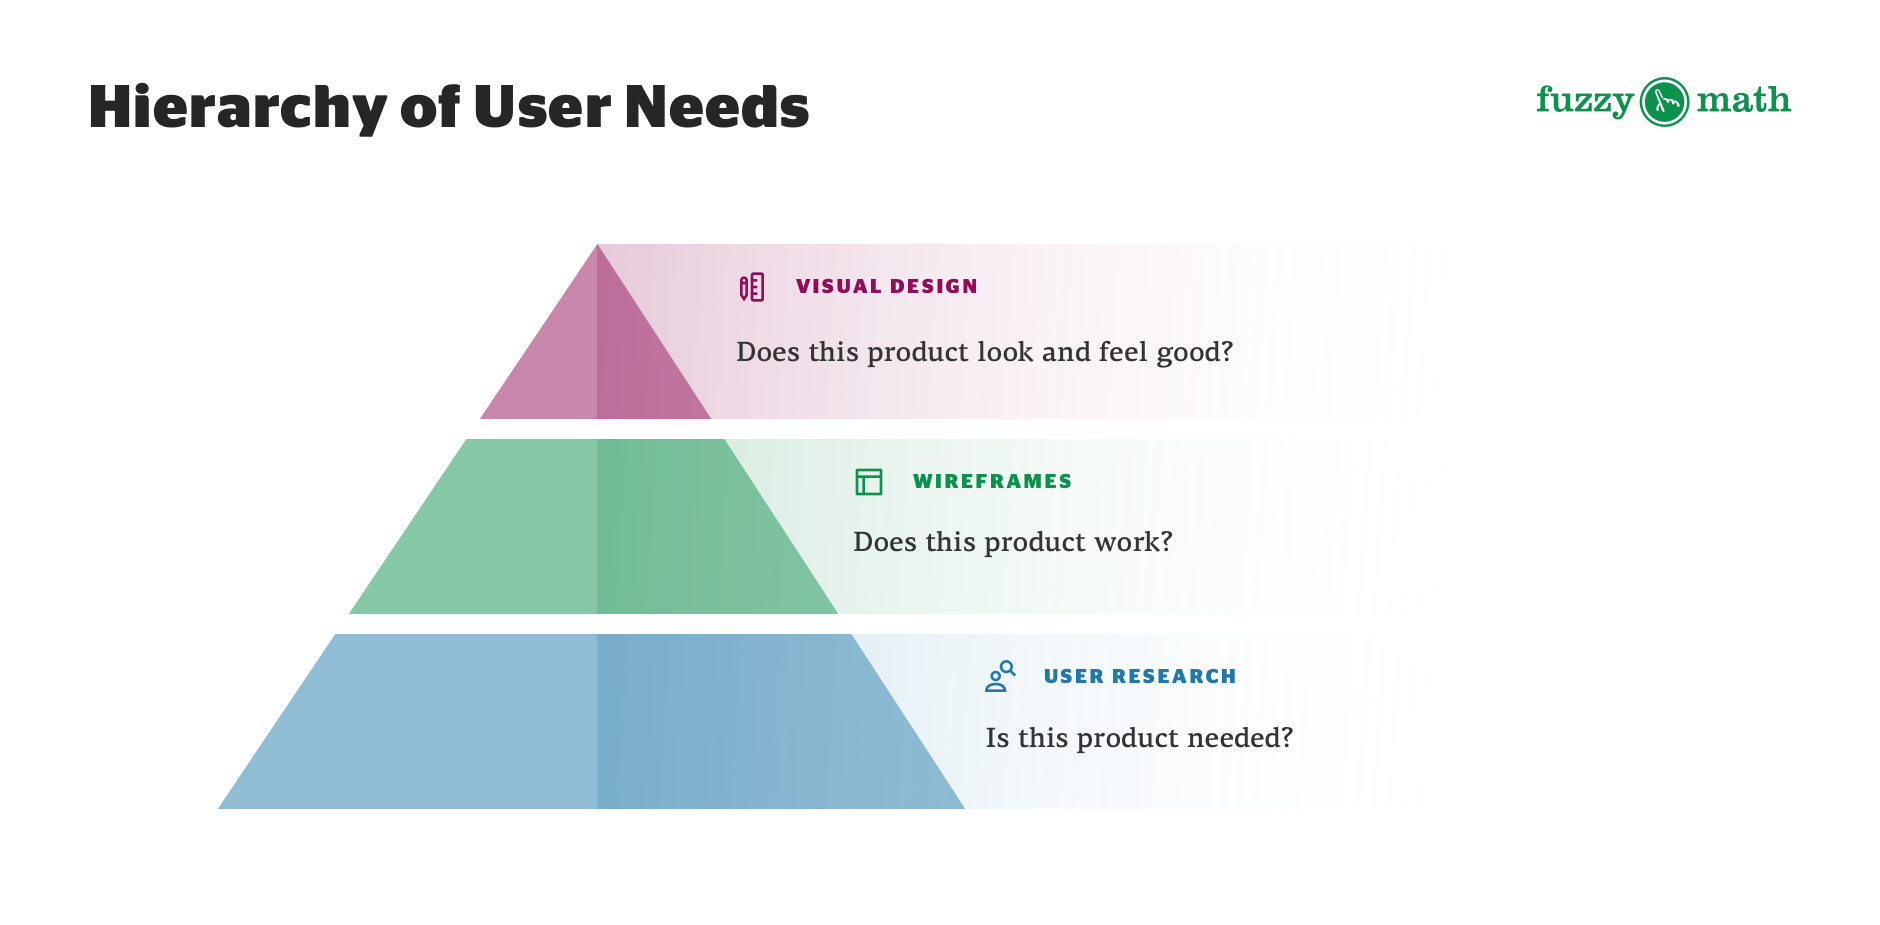 A diagram showing the hierarchy of user needs as a pyramid. The bottom tier is user research: Is this product needed? The second tier is wireframes: Does this product work? The third and final tier is visual design: Does this product look and feel good?